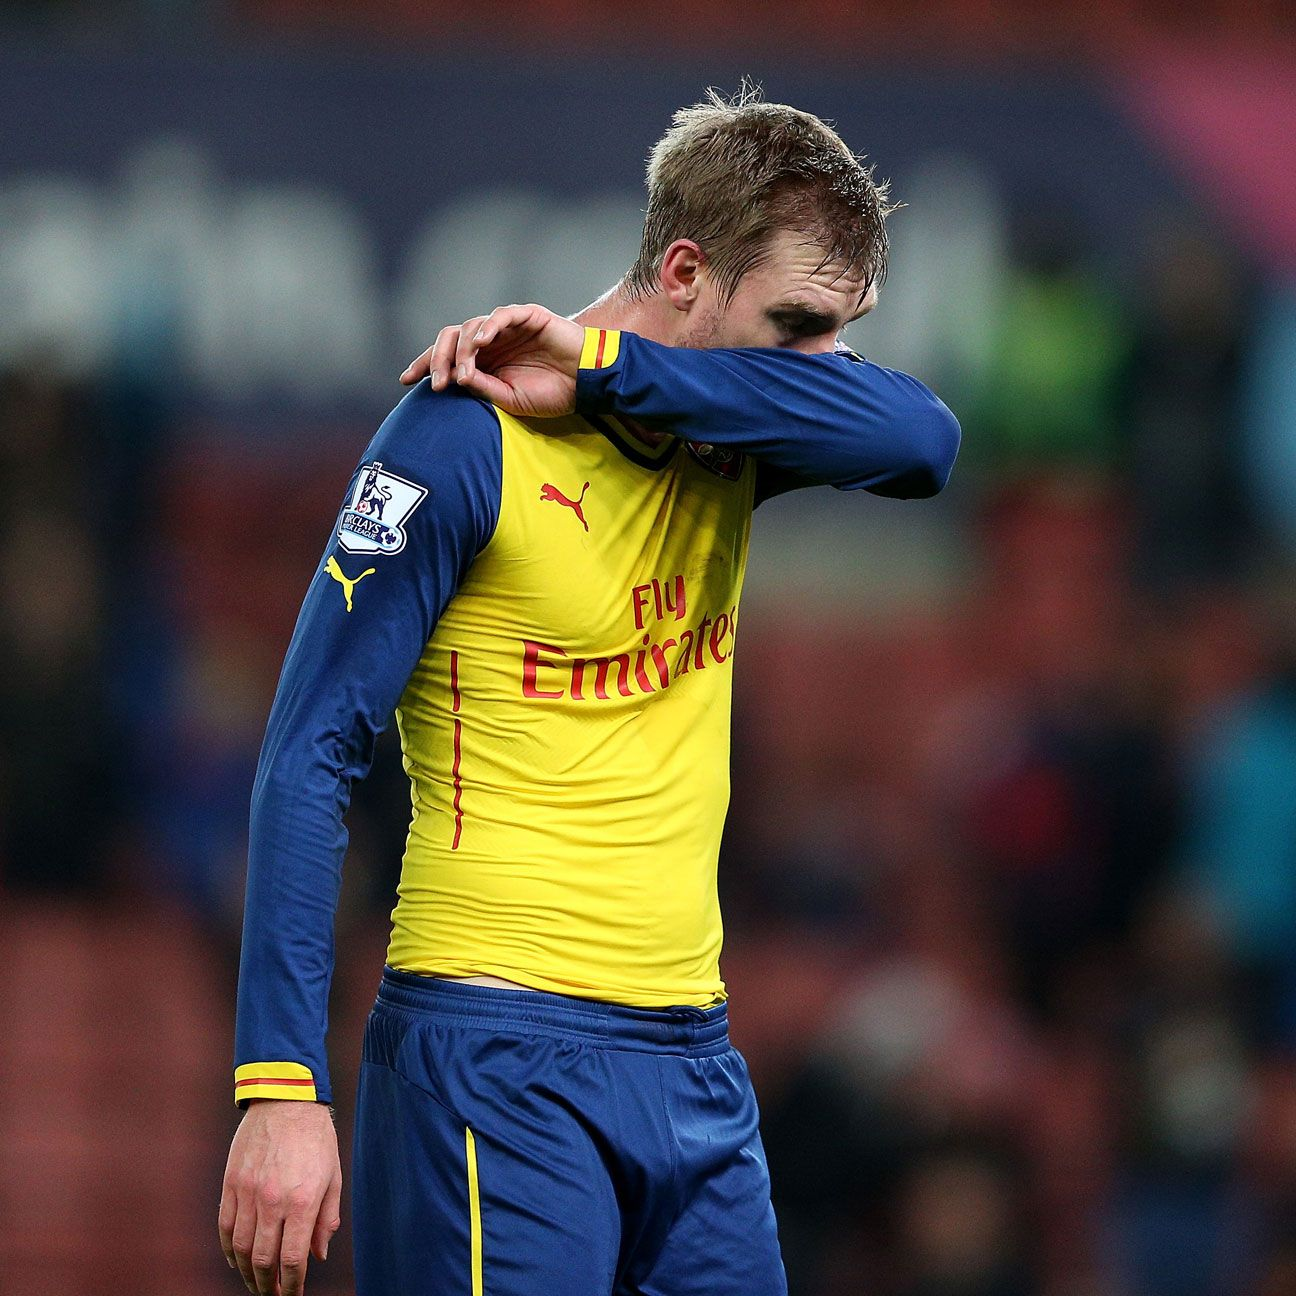 It well could be time for the heavily-used Per Mertesacker to receive a break from action in order to regain his form.